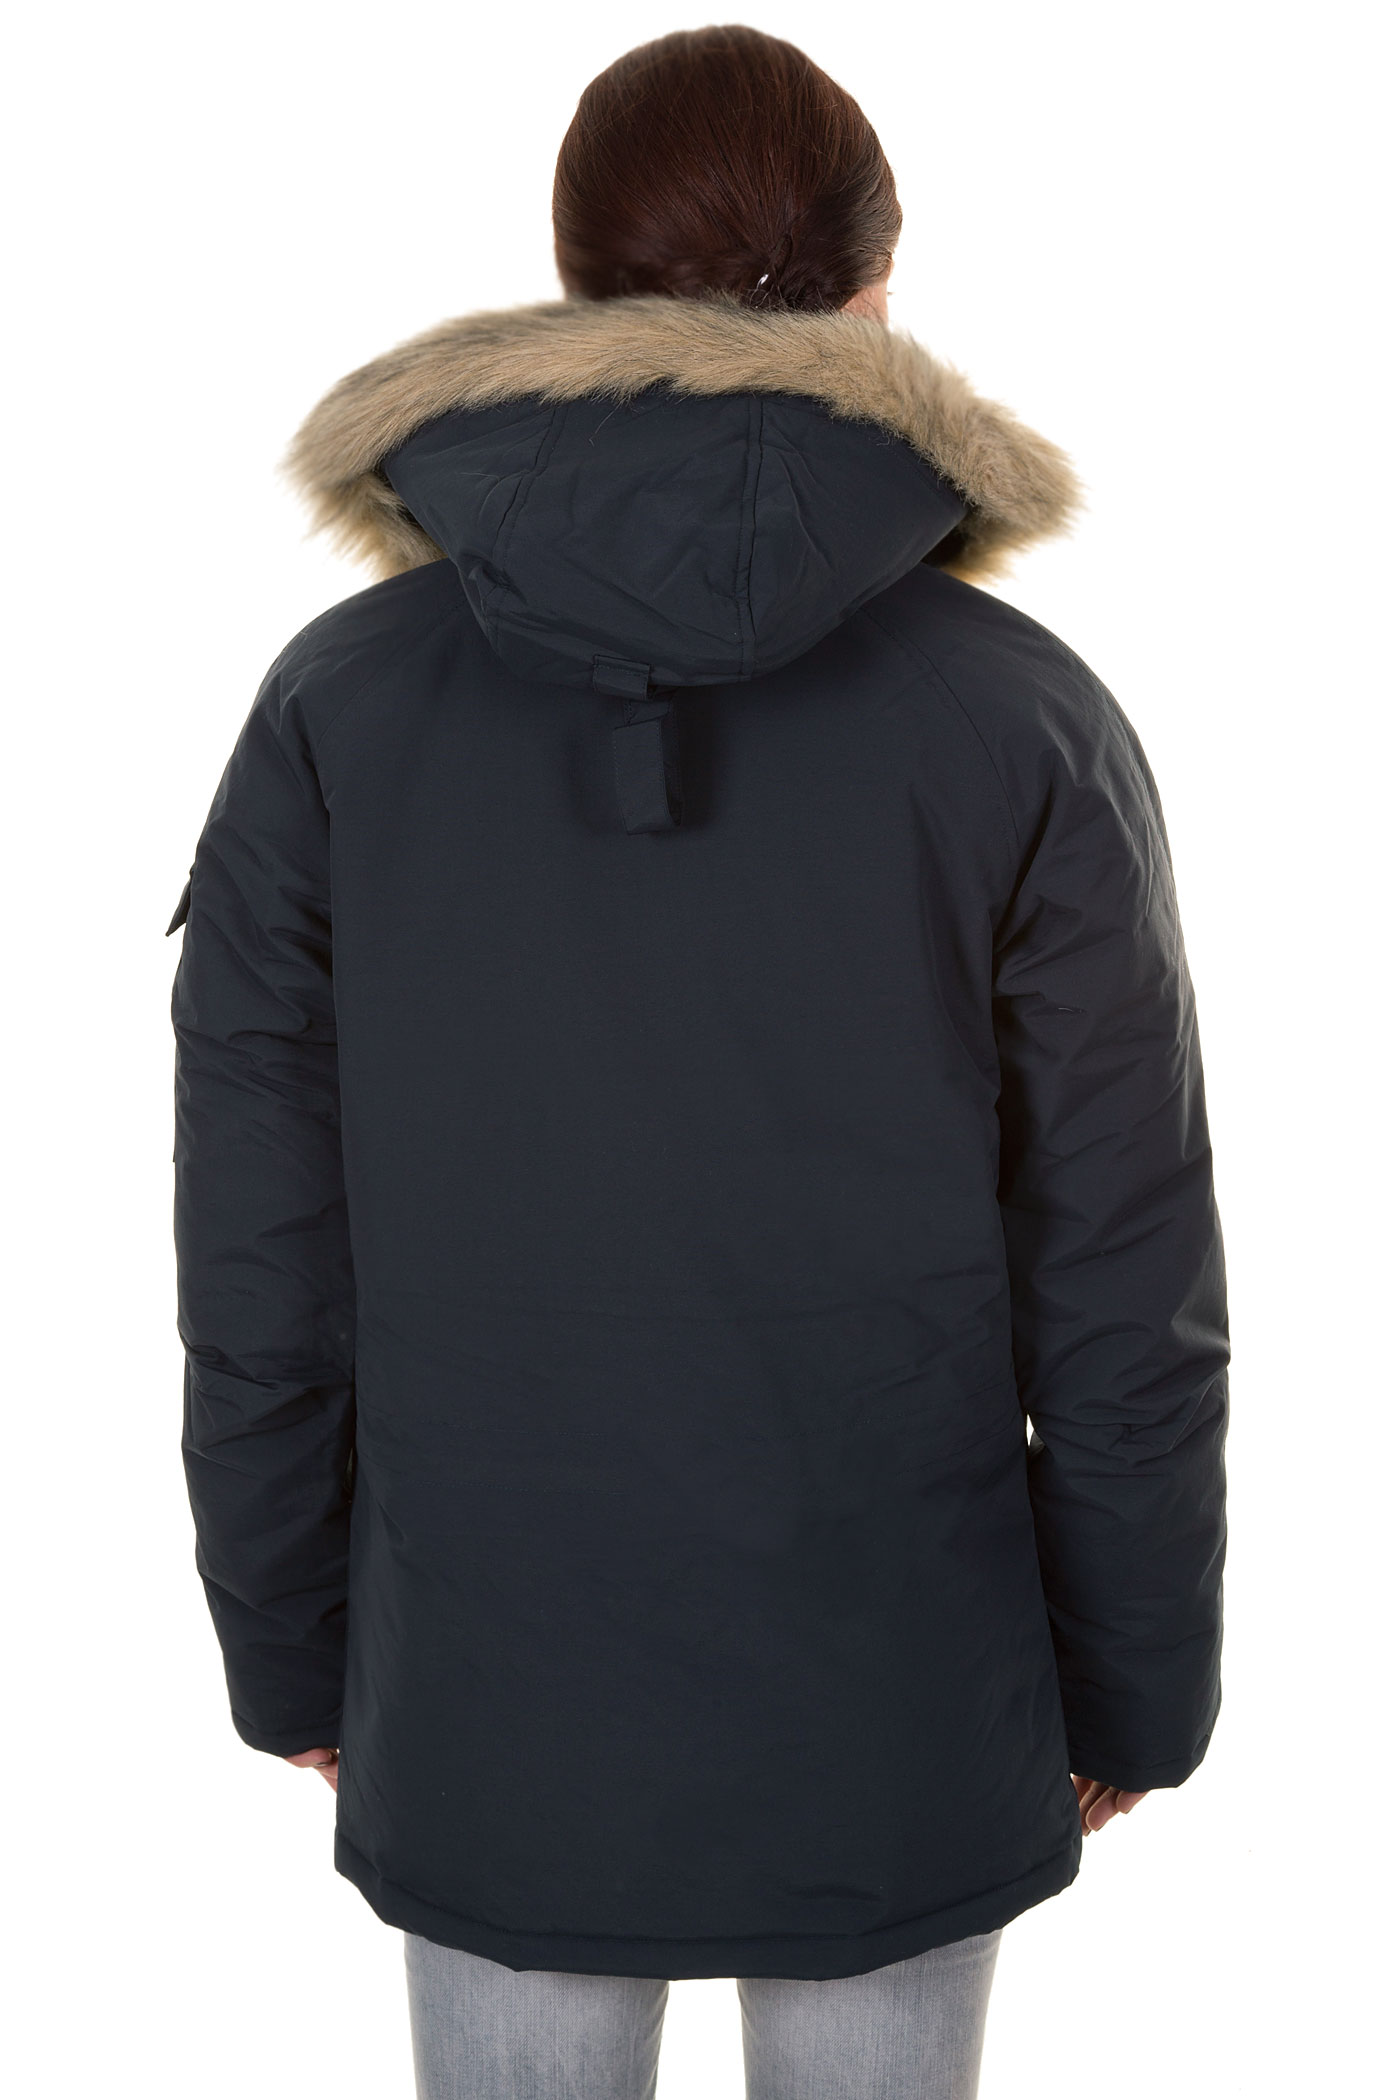 carhartt anchorage parka jacket women navy buy at. Black Bedroom Furniture Sets. Home Design Ideas